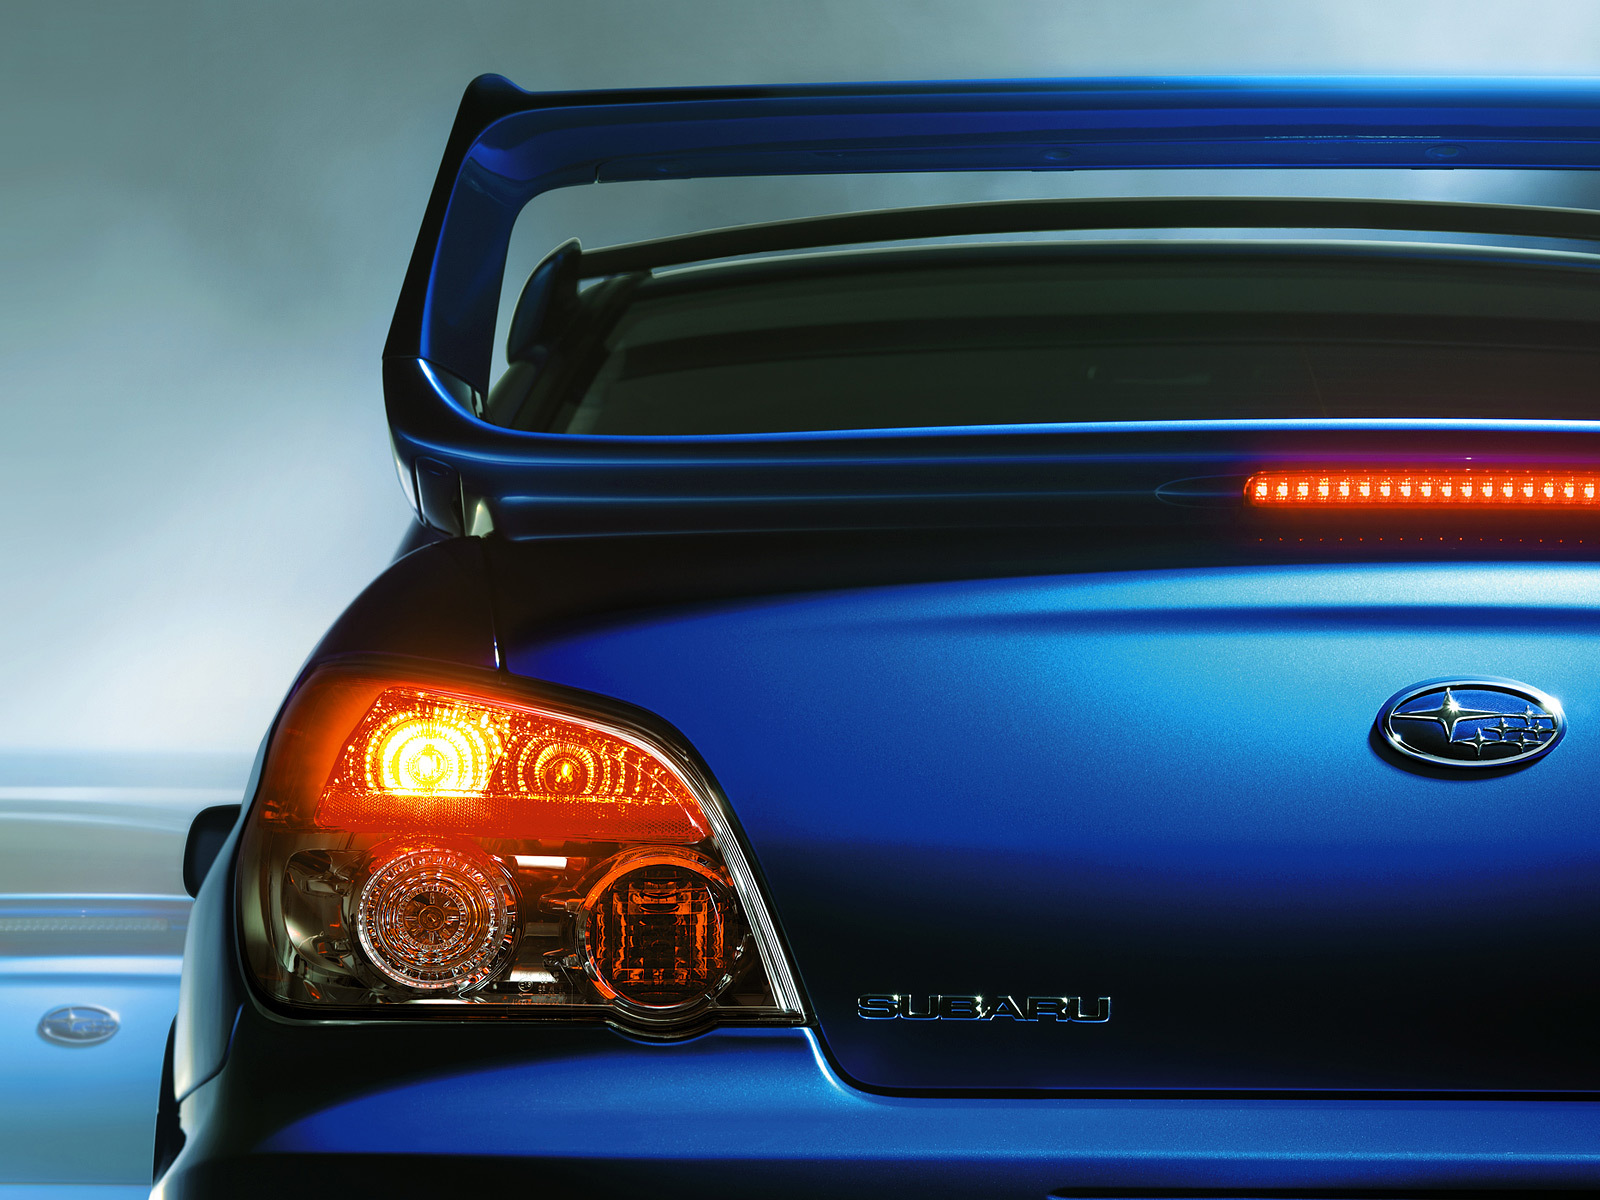 Subaru wallpaper and background image 1600x1200 id462250 vehicles subaru wallpaper voltagebd Images